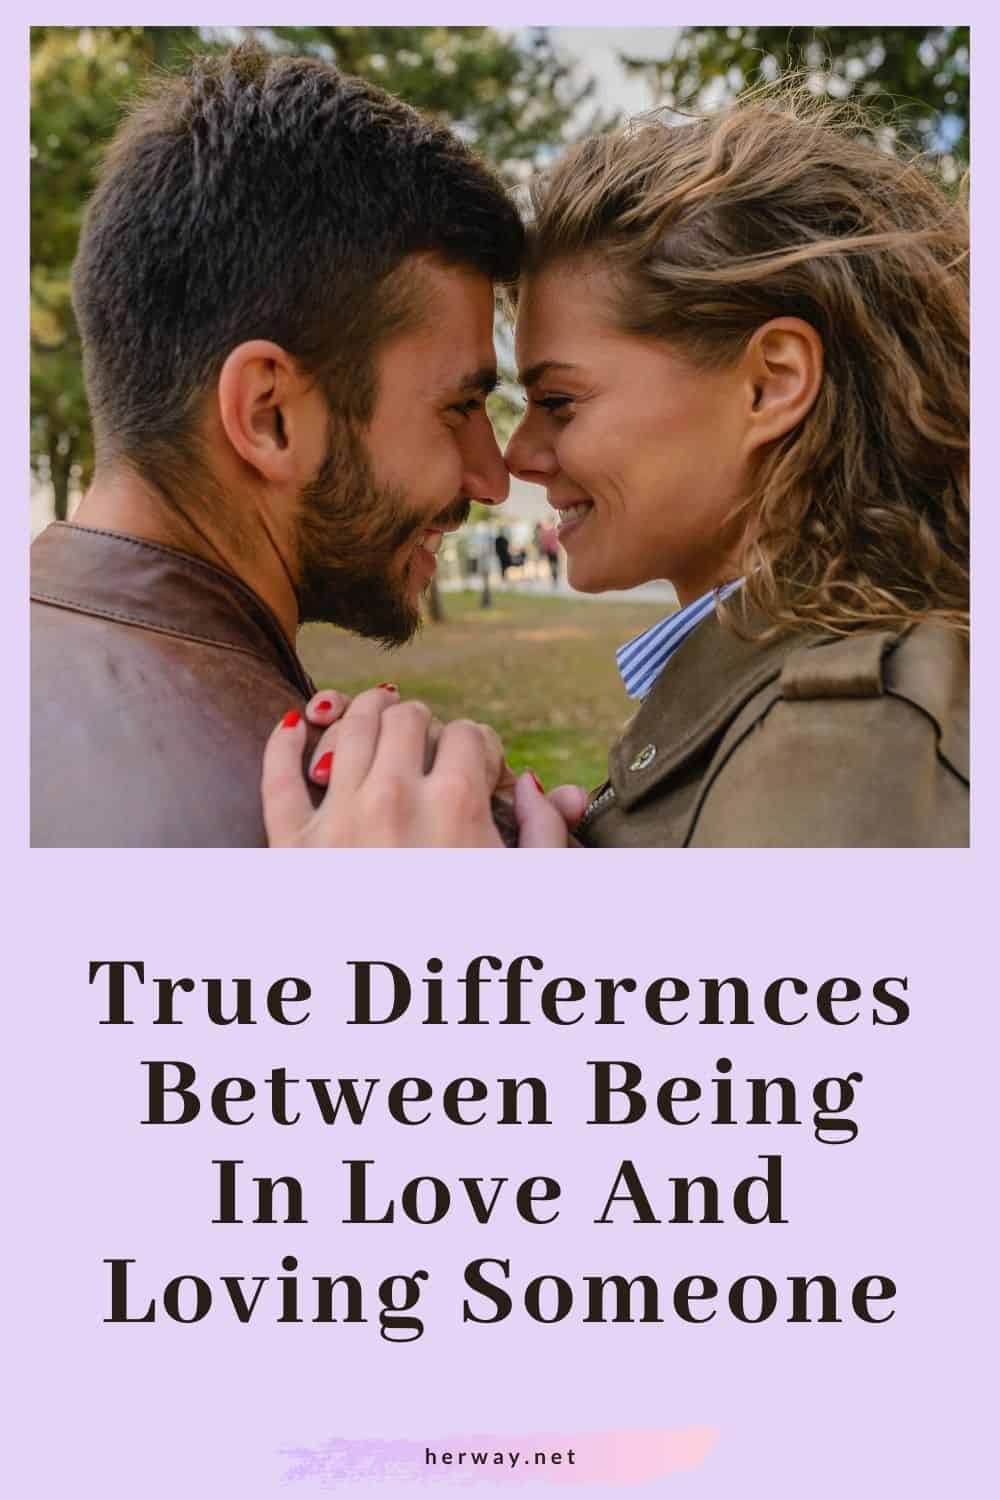 True Differences Between Being In Love And Loving Someone